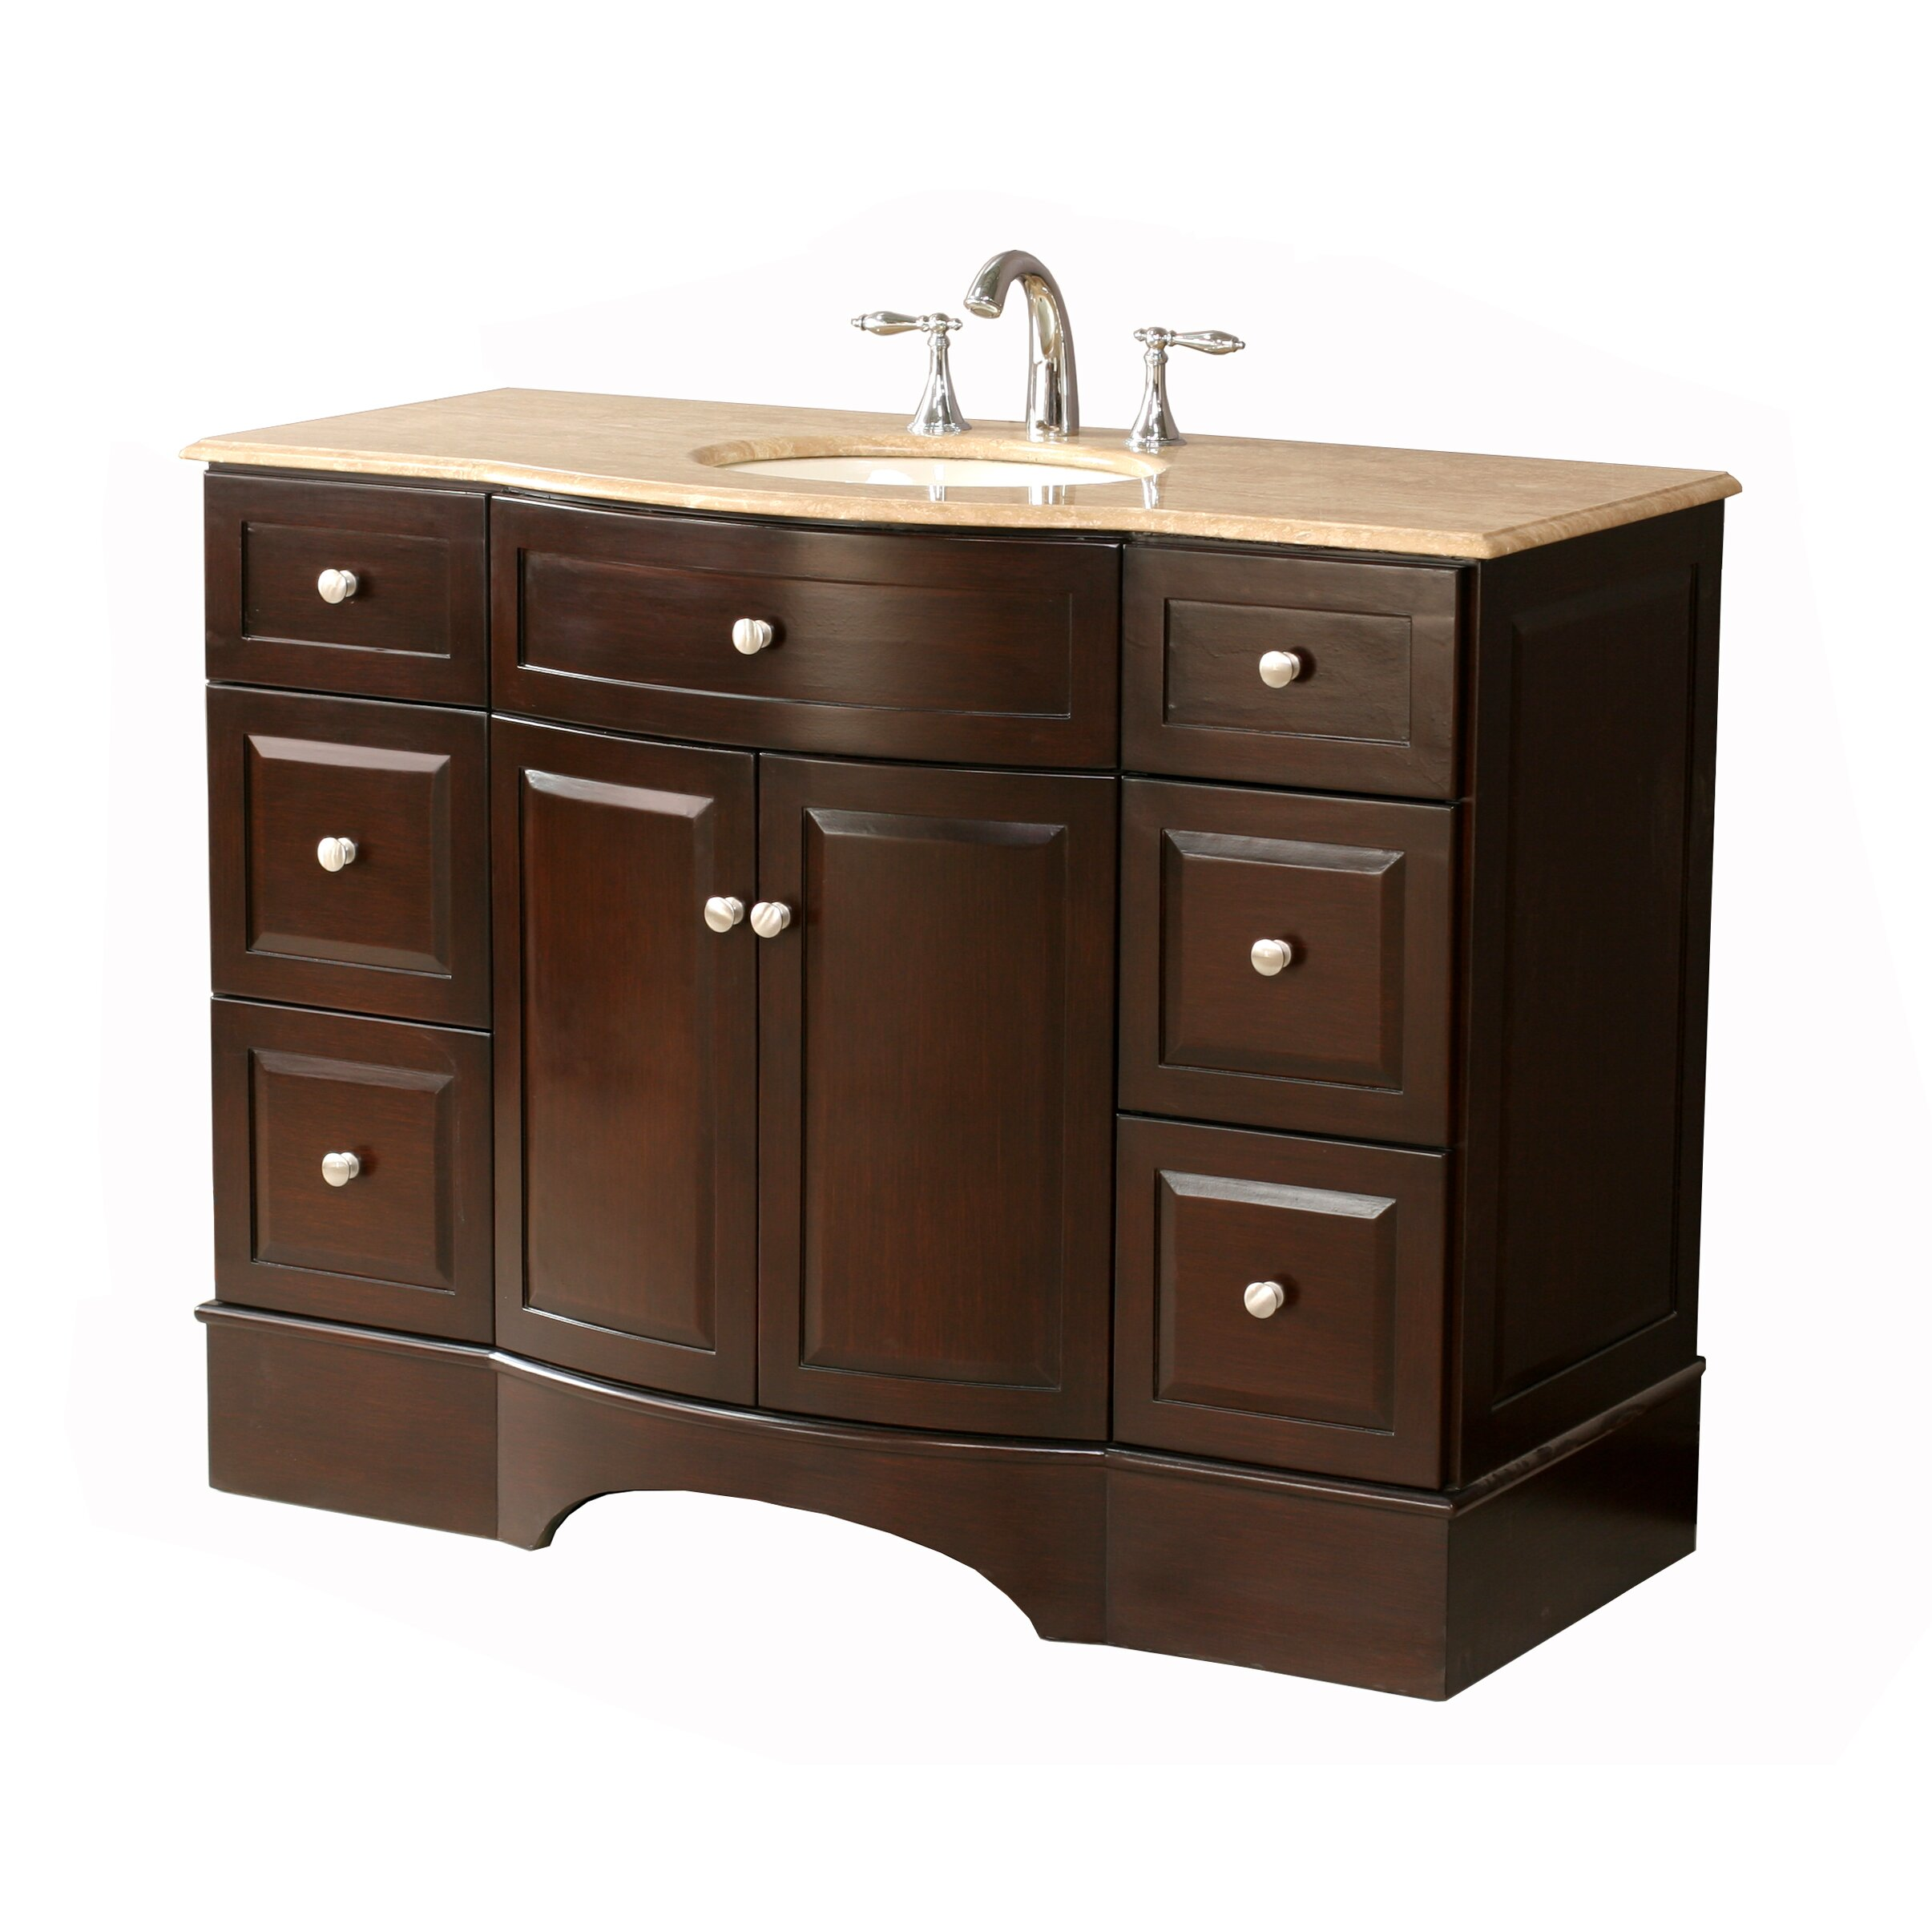 Dcor Design Dale 48 Single Bathroom Vanity Set With Mirror Reviews Wayfair